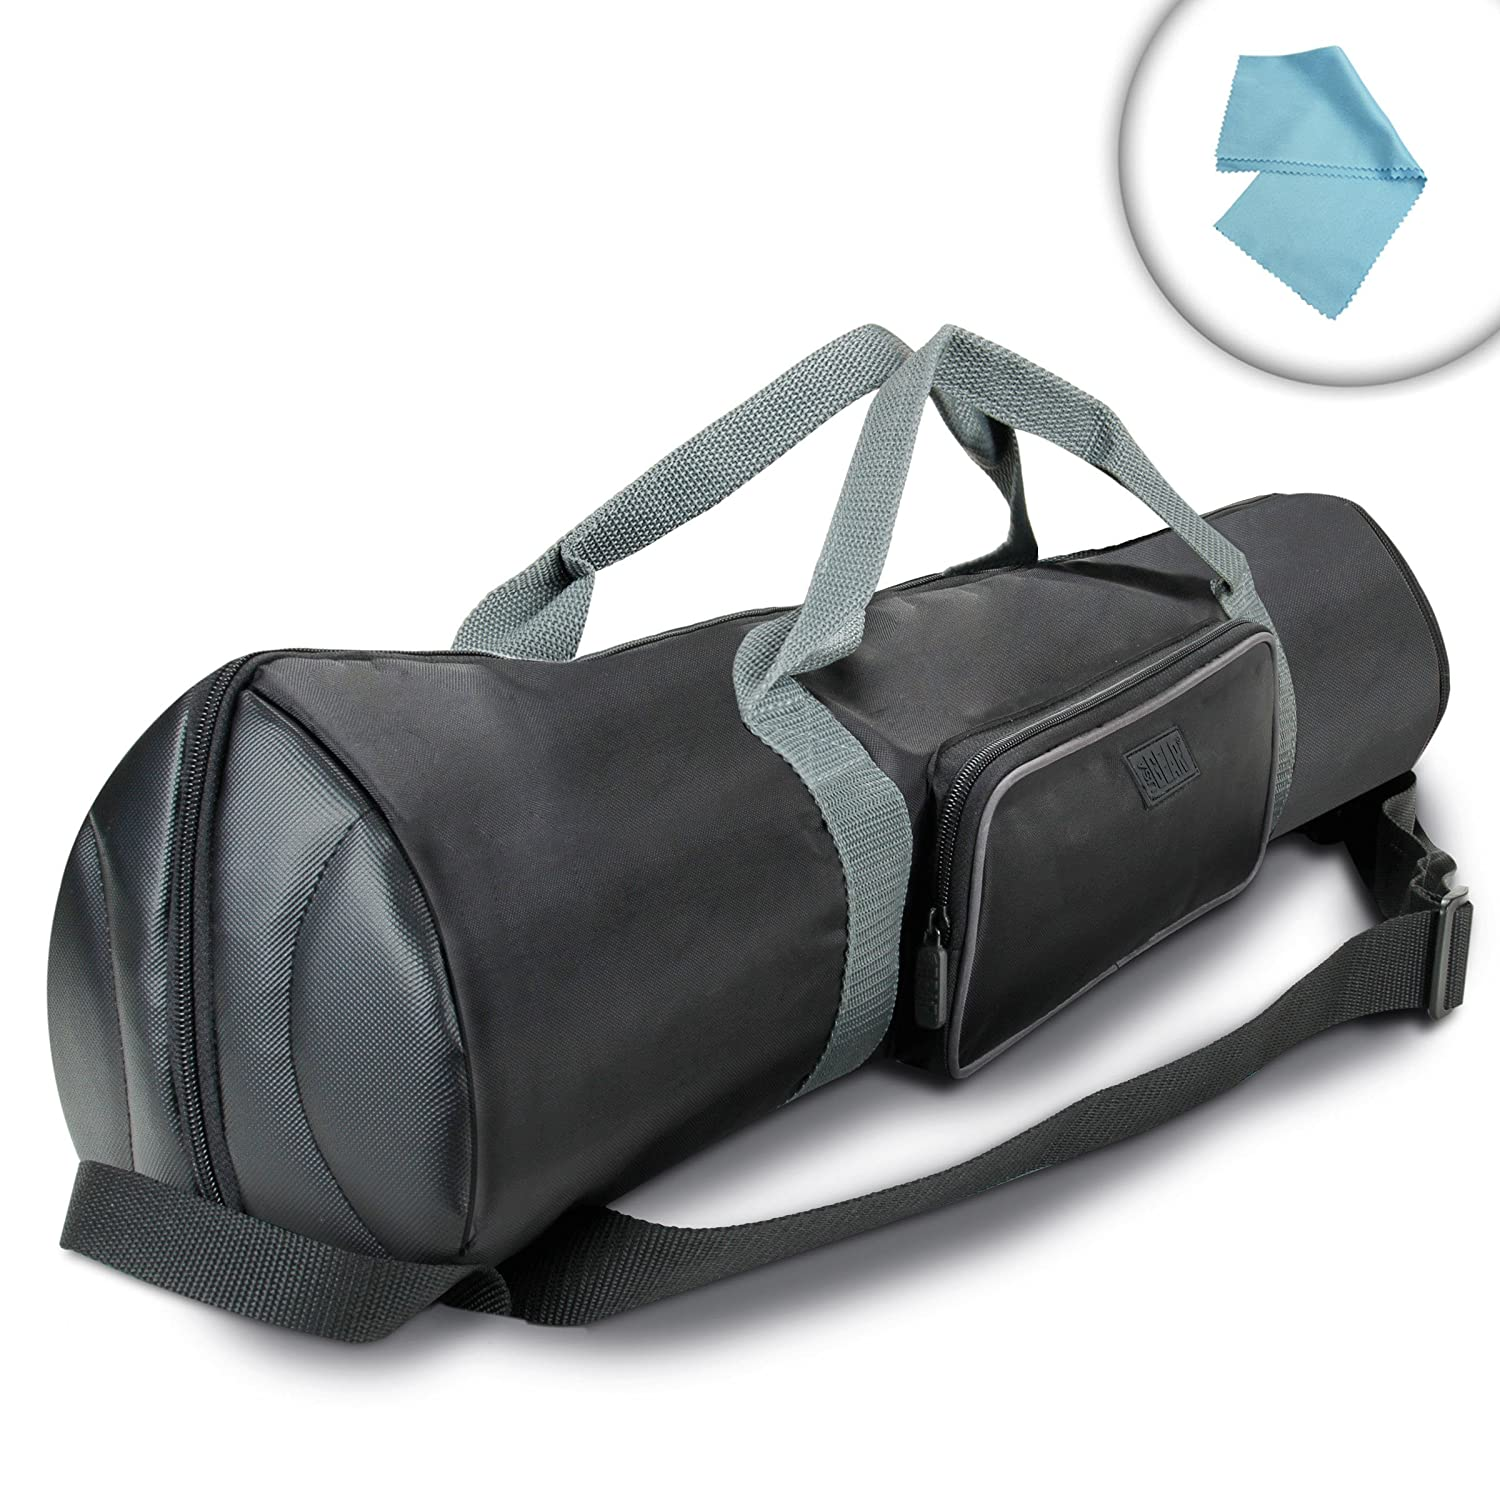 USA Gear 35 Inch Padded Tripod Carrying Case Bag with Strap , Top Expanding Extension & Accessory Storage - Works with Ravelli , Manfrotto , Benro & More 35-Inch Folded Tripods Accessory Power 4332015239